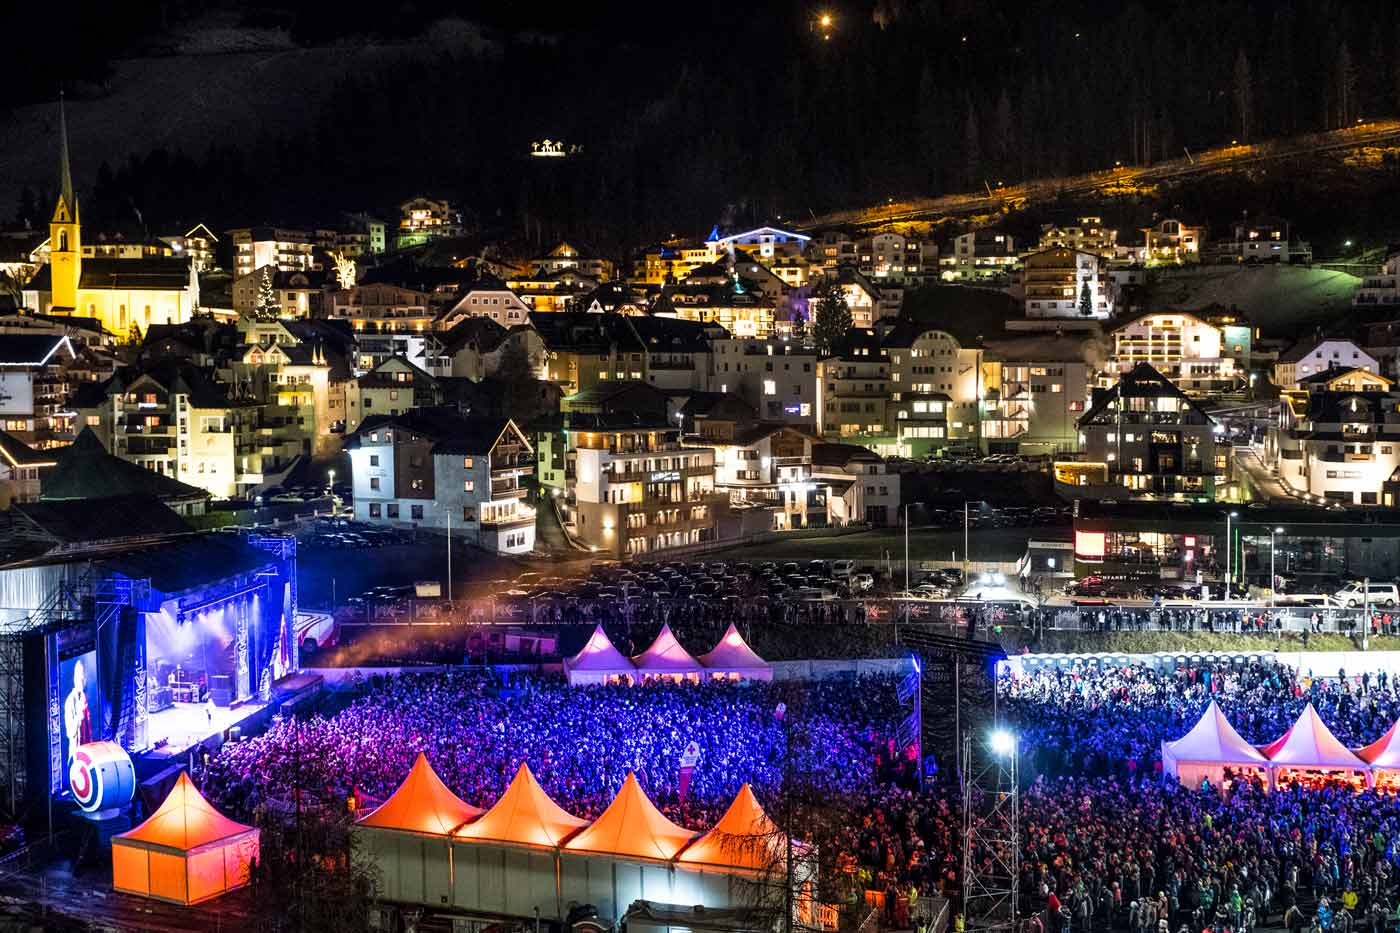 Top of the Mountain Opening Concert in Ischgl